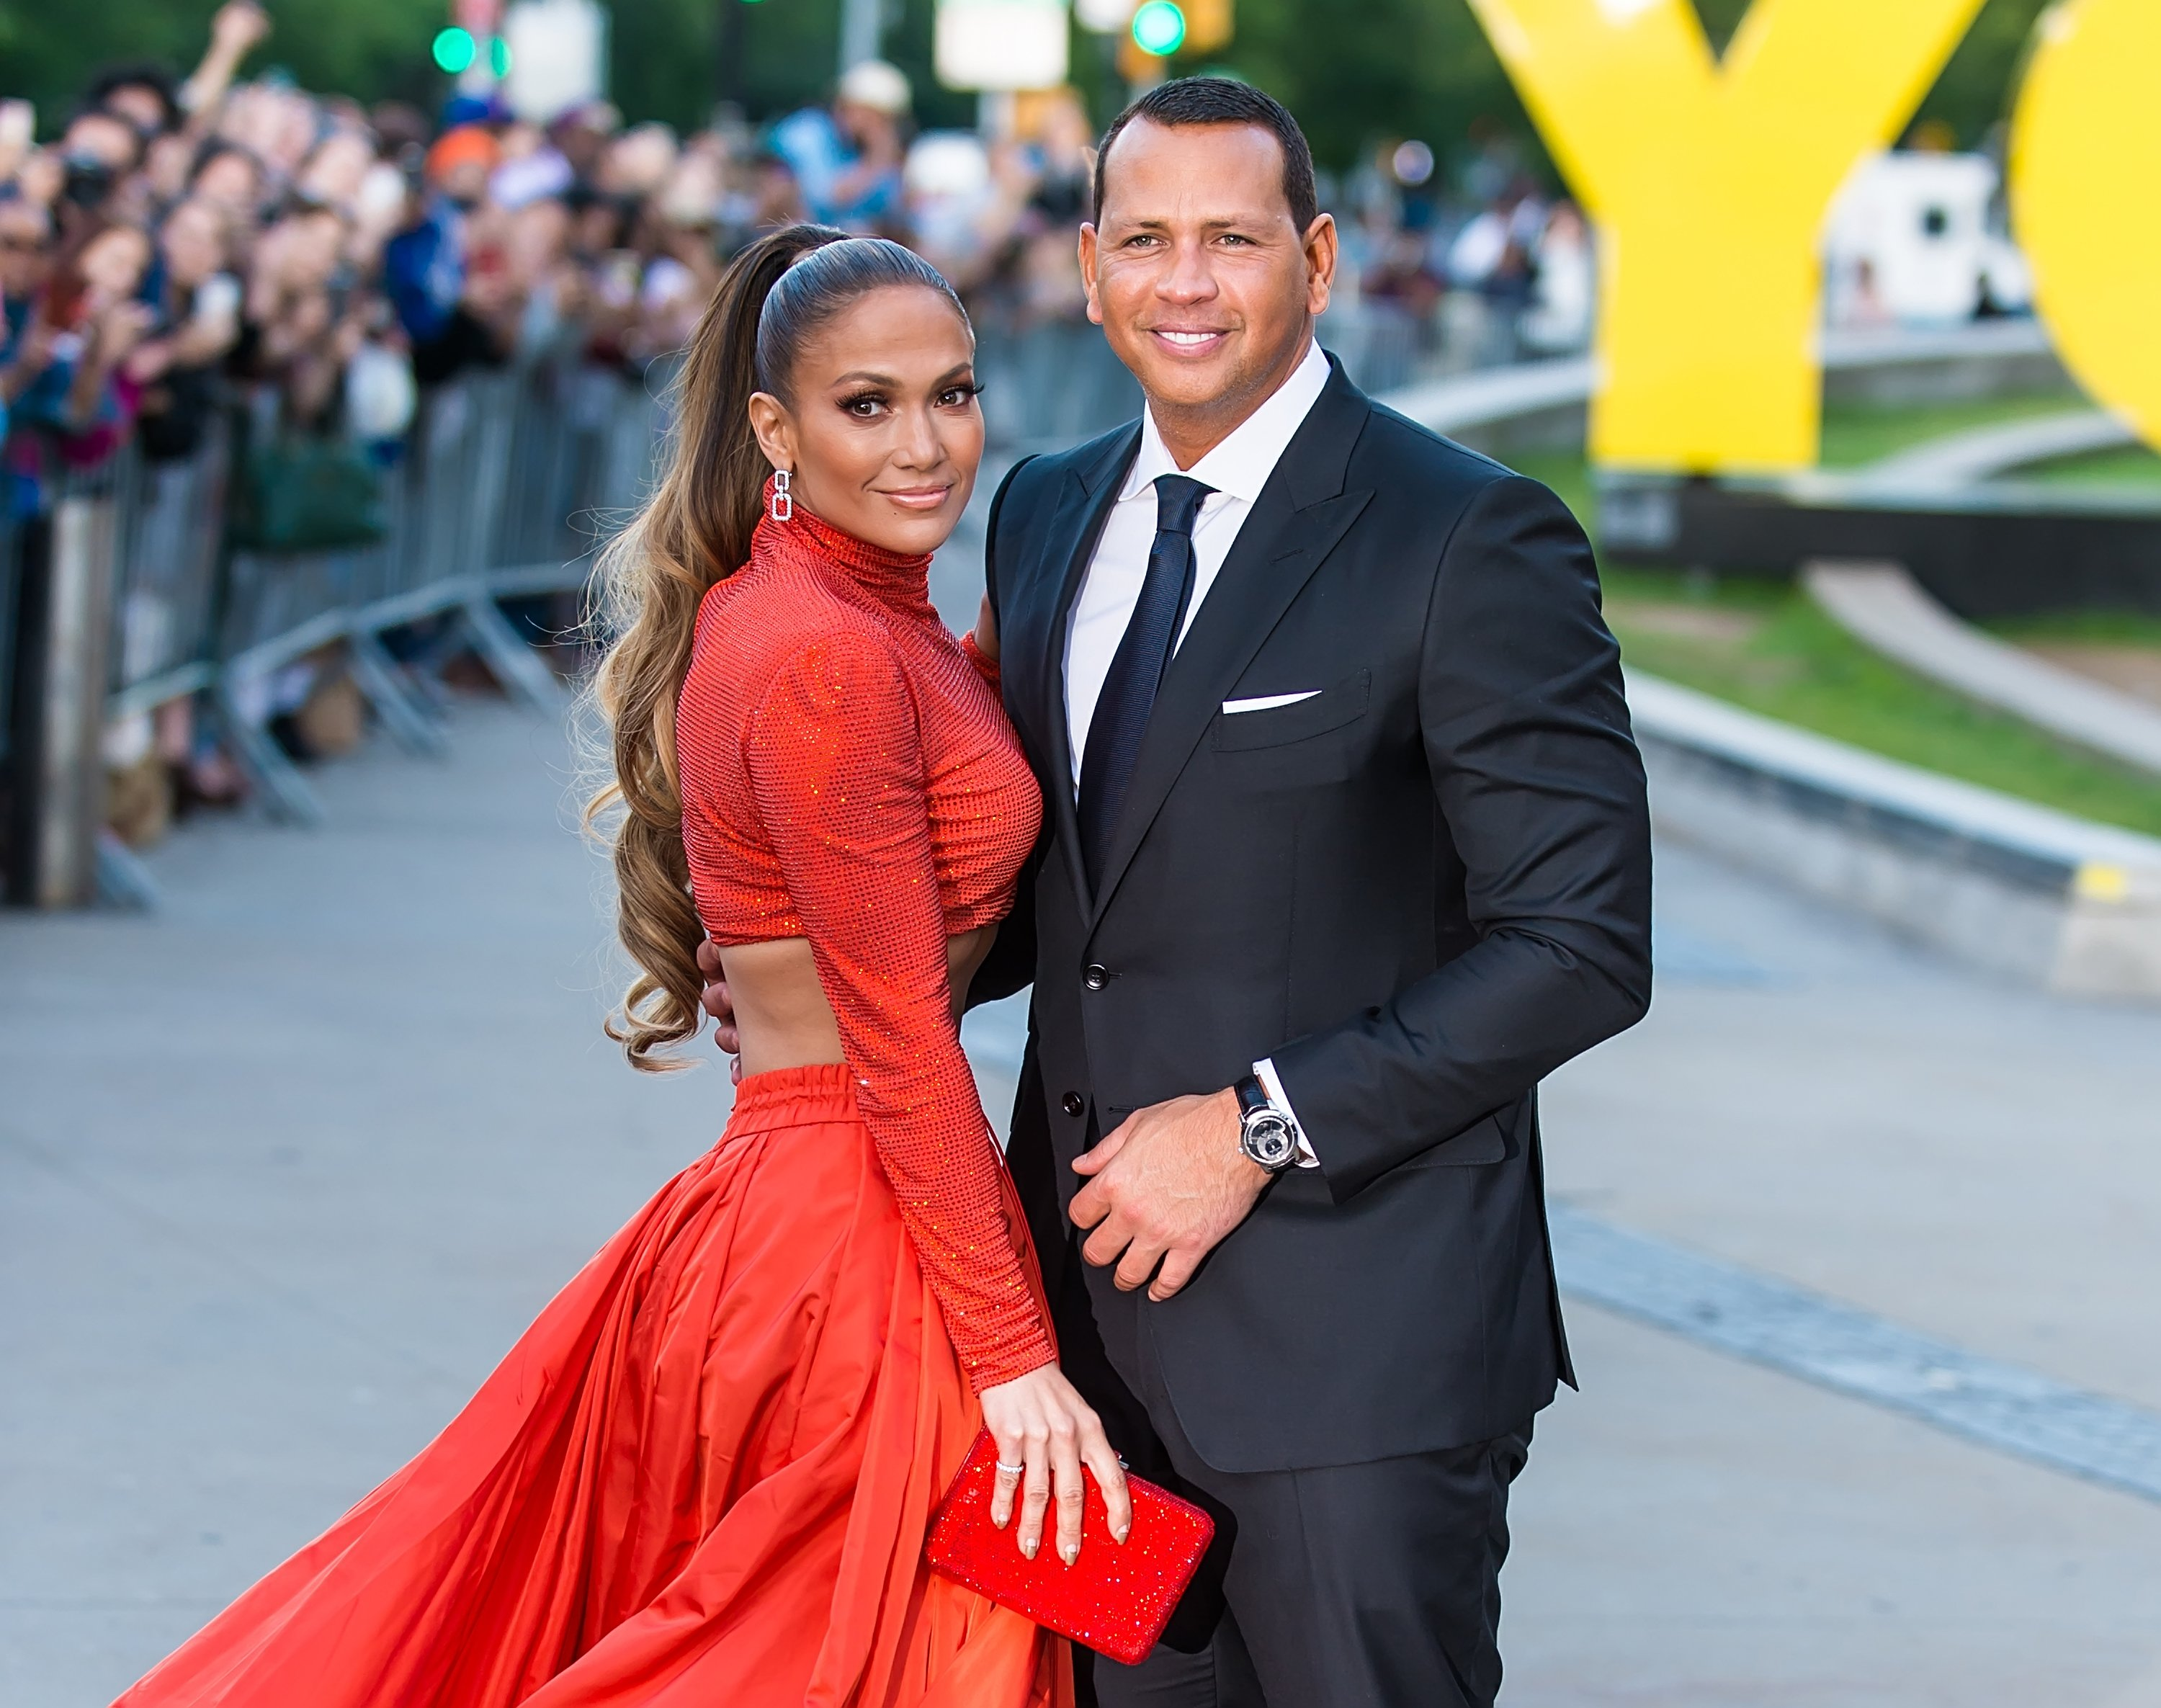 Jennifer Lopez and Alex Rodriguez arrive at the 2019 CFDA Fashion Awards on June 3, 2019, in New York City. | Source: Getty Images.